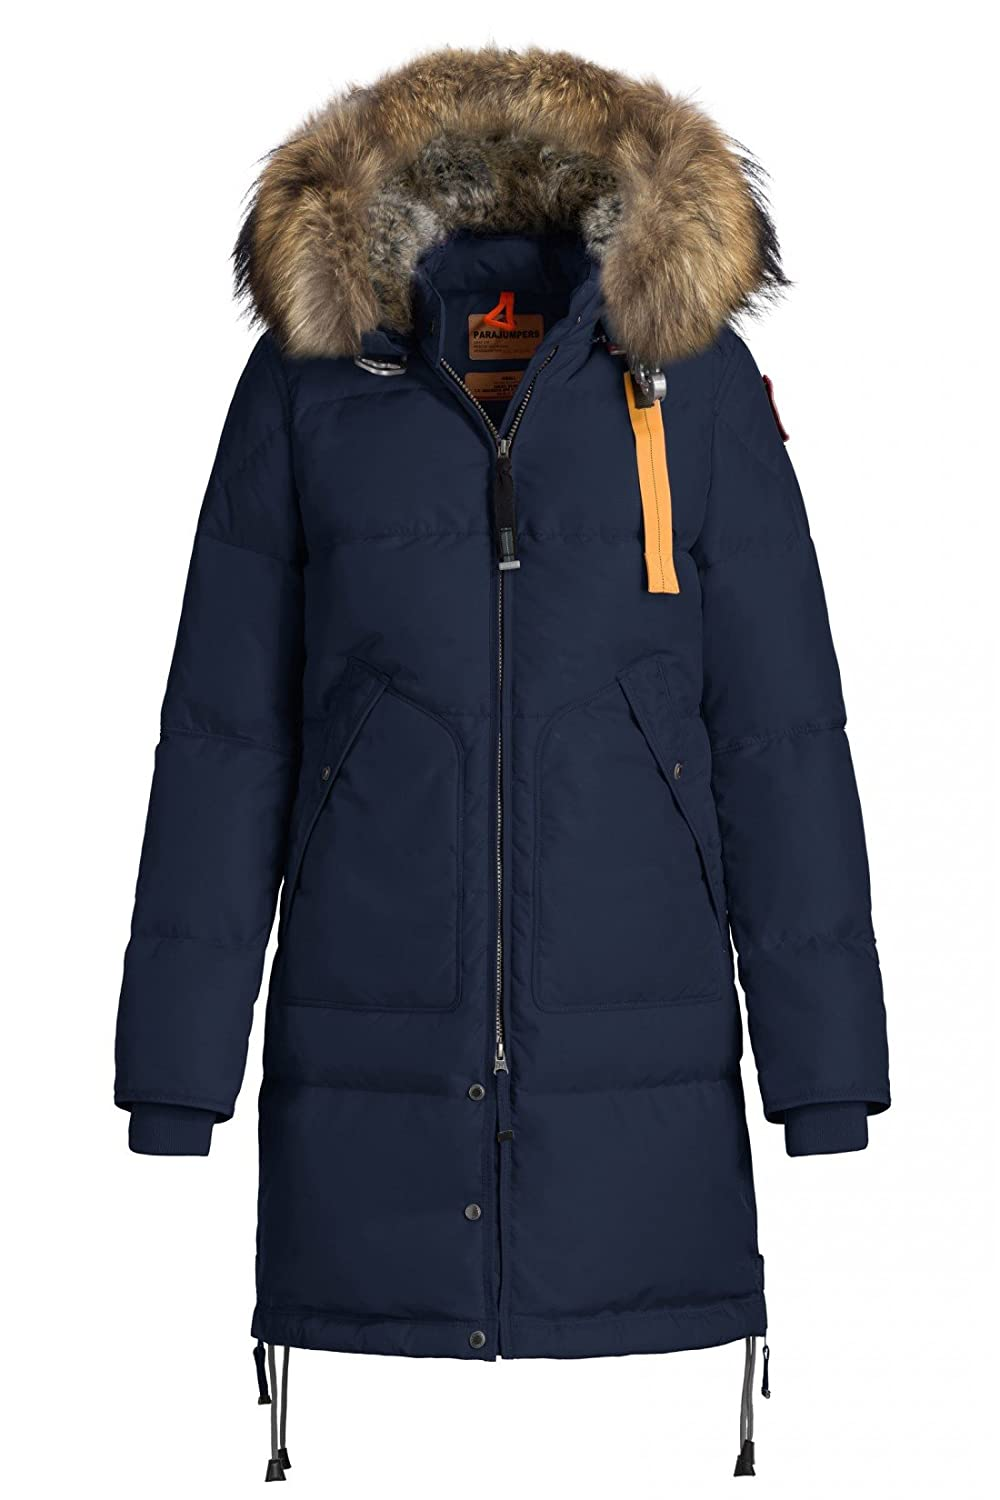 parajumpers long bear light sale